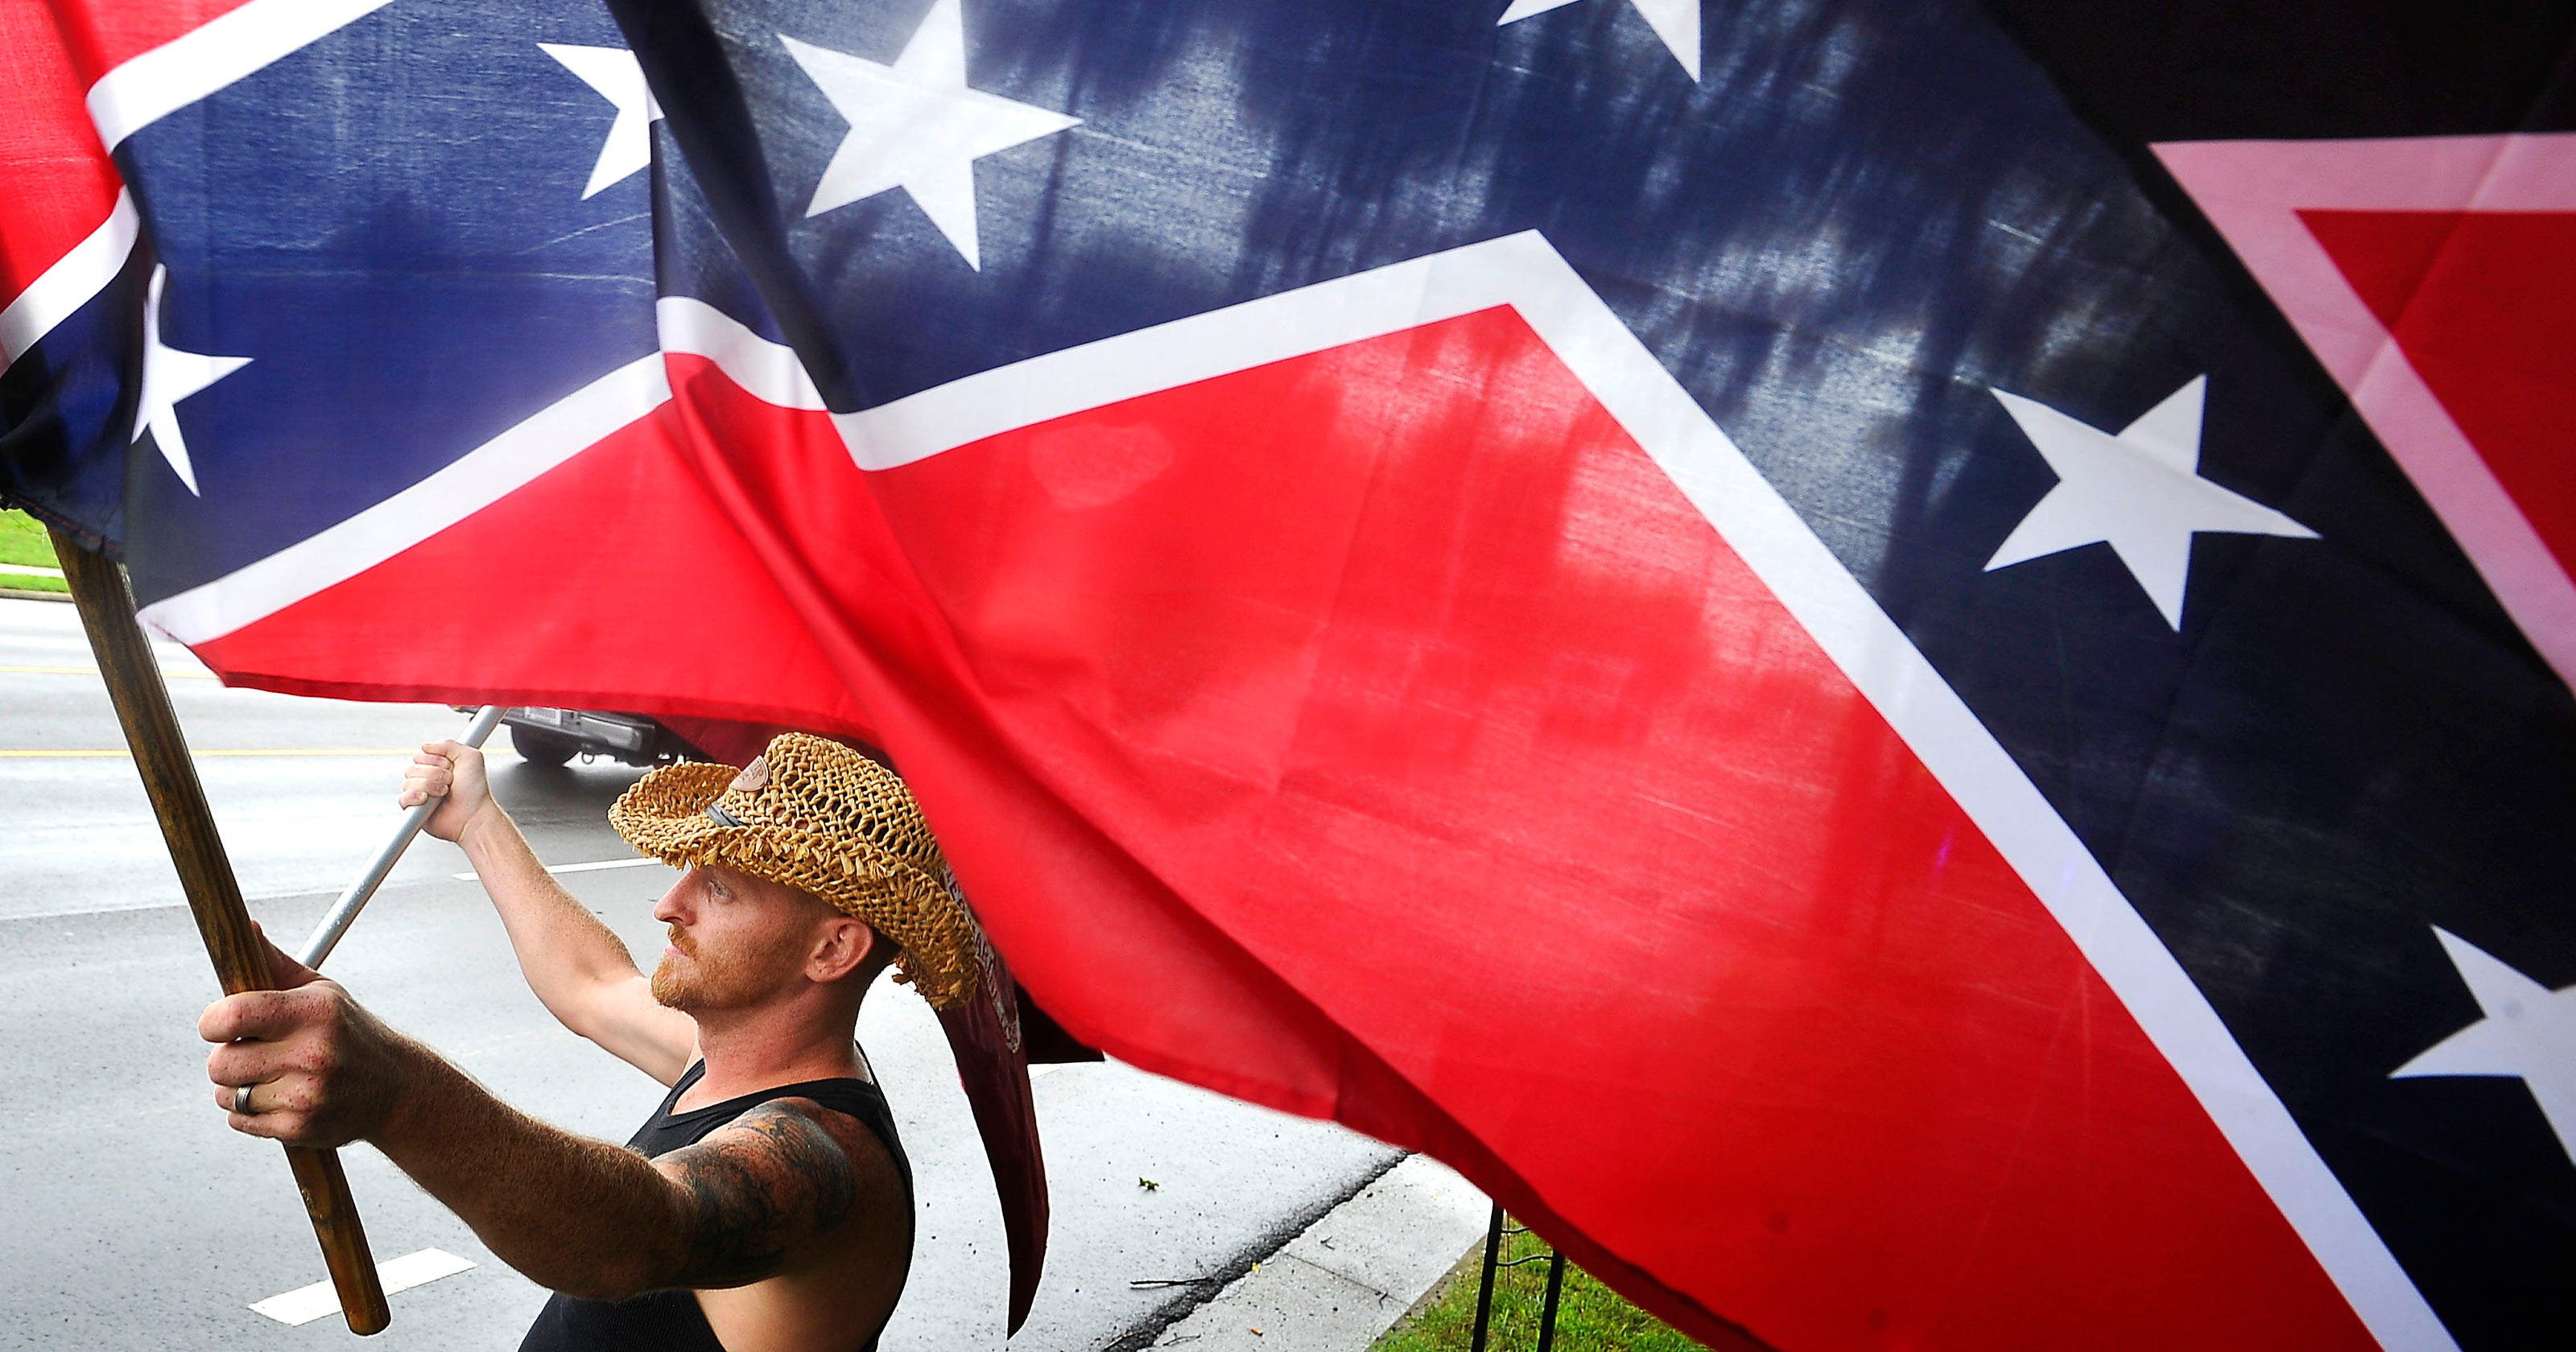 Tennessee Confederate flag license plates have increased since 2015